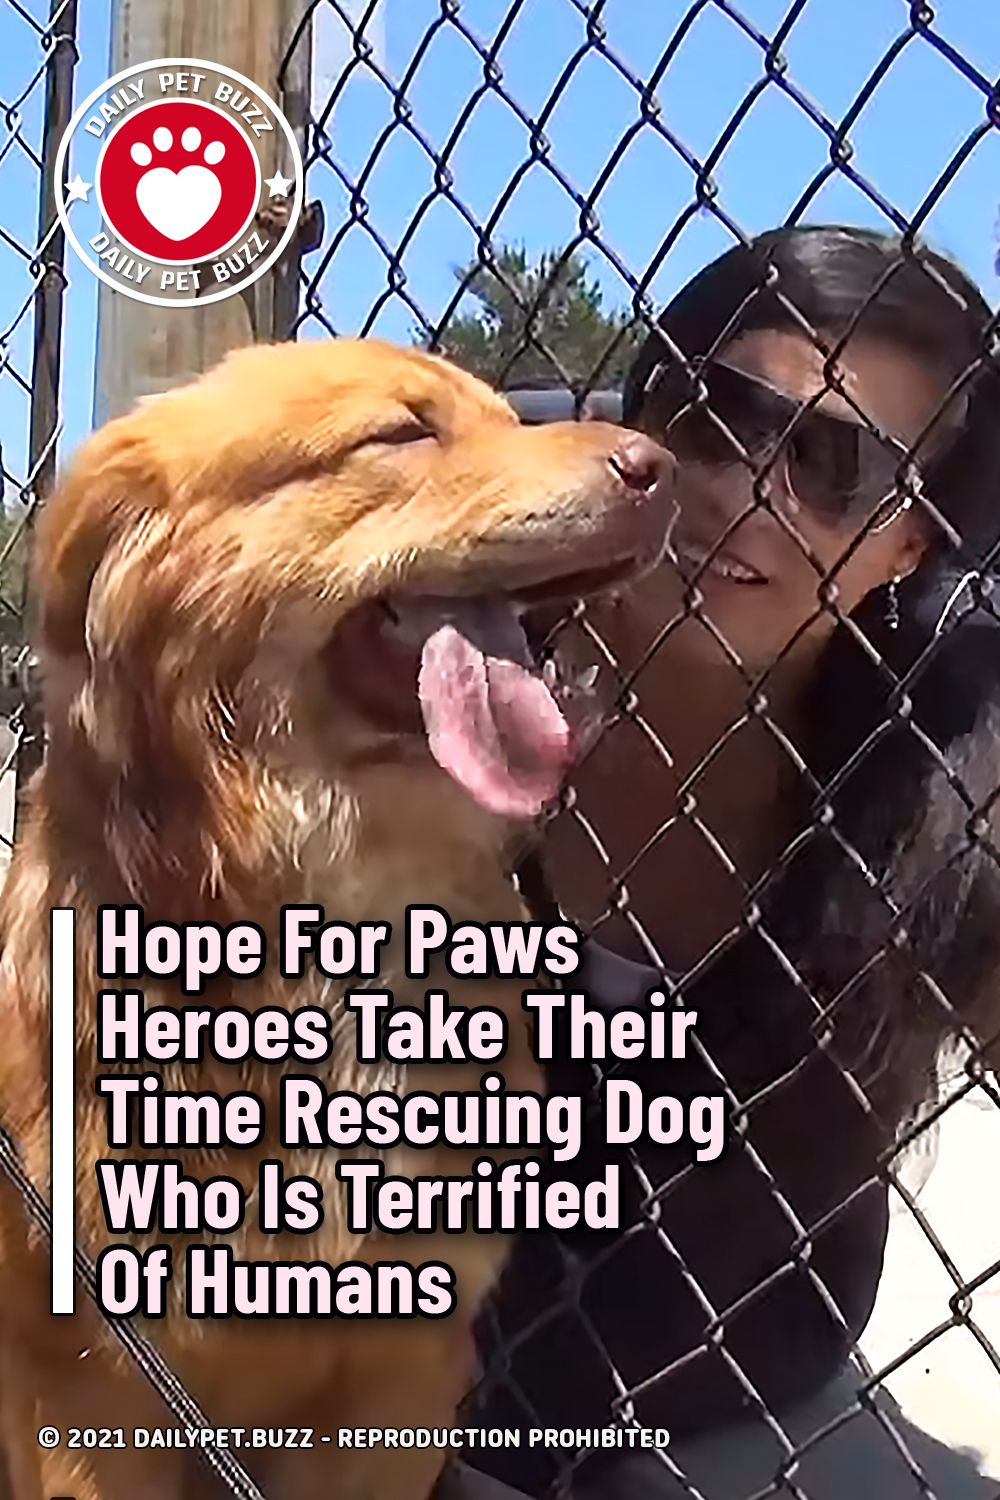 Hope For Paws Heroes Take Their Time Rescuing Dog Who Is Terrified Of Humans